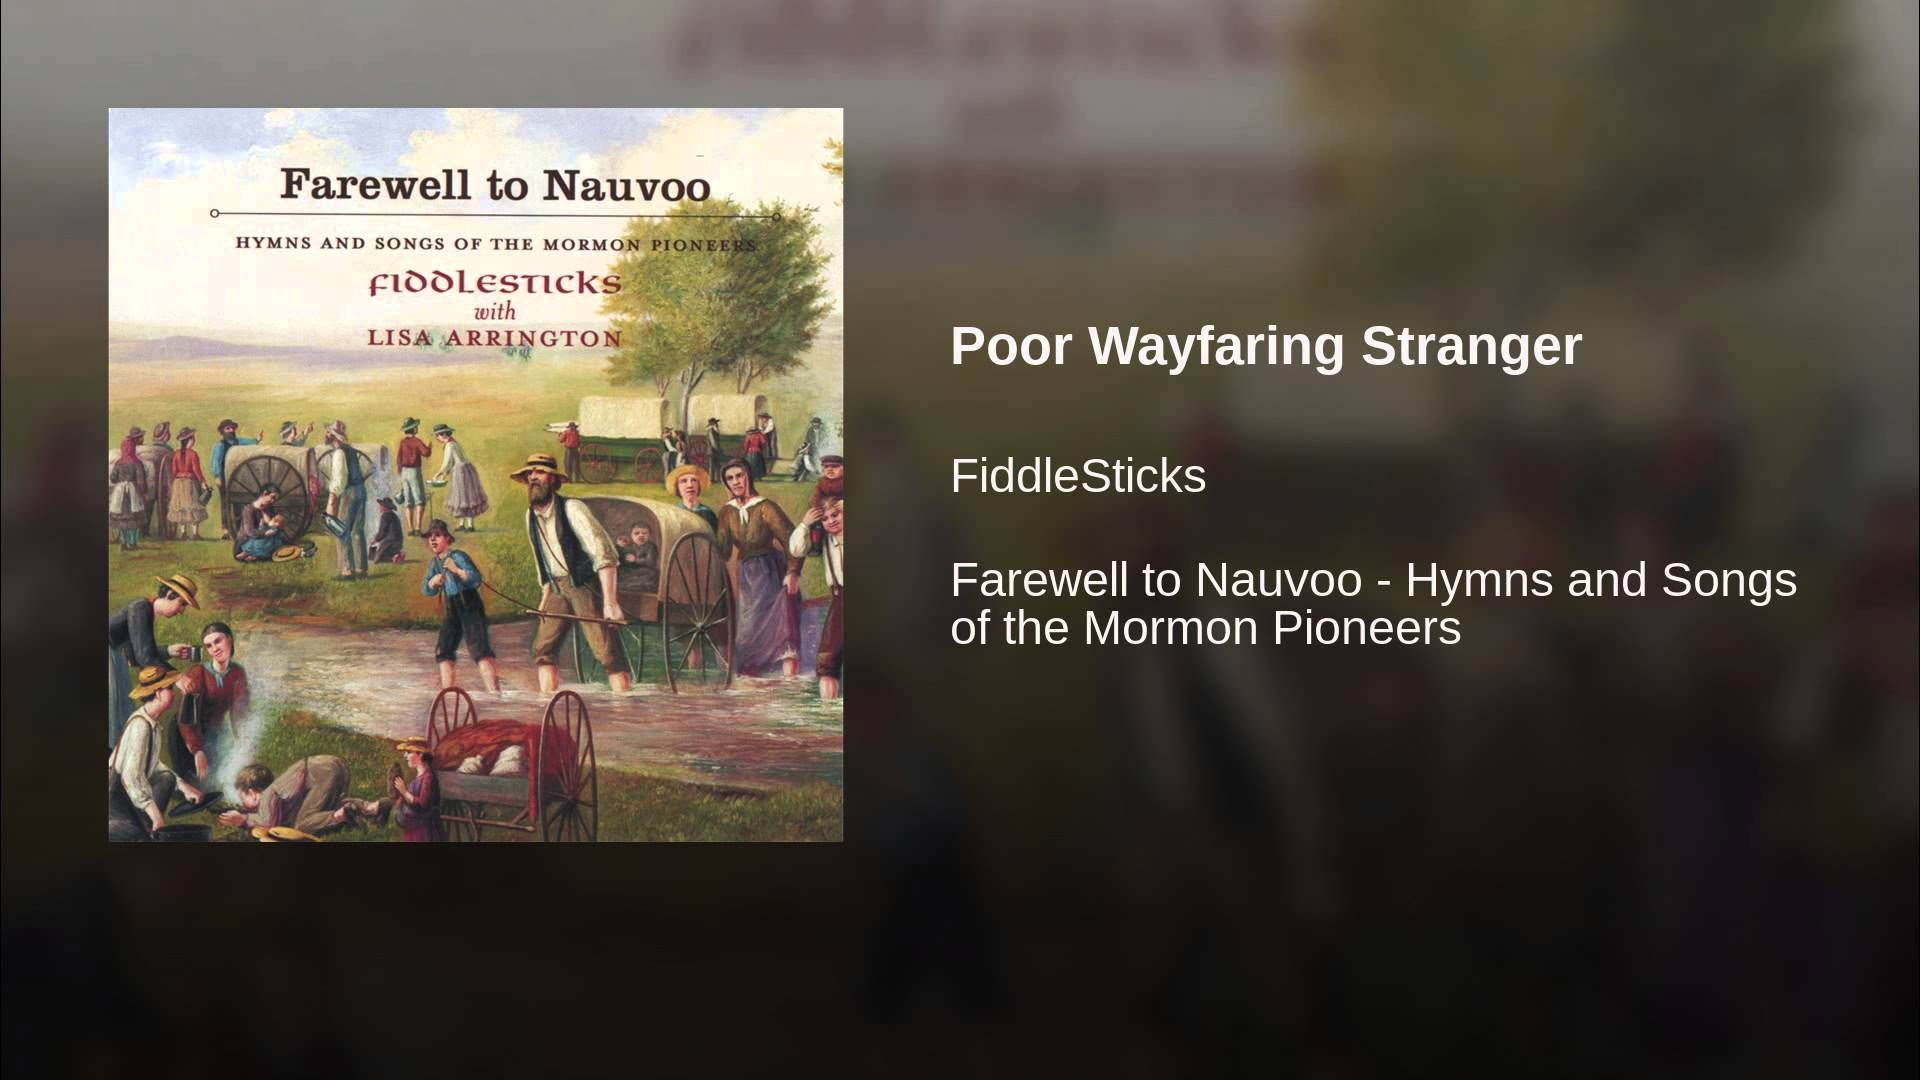 Poor Wayfaring Stranger Lord Of The Dance Songs Humble Heart